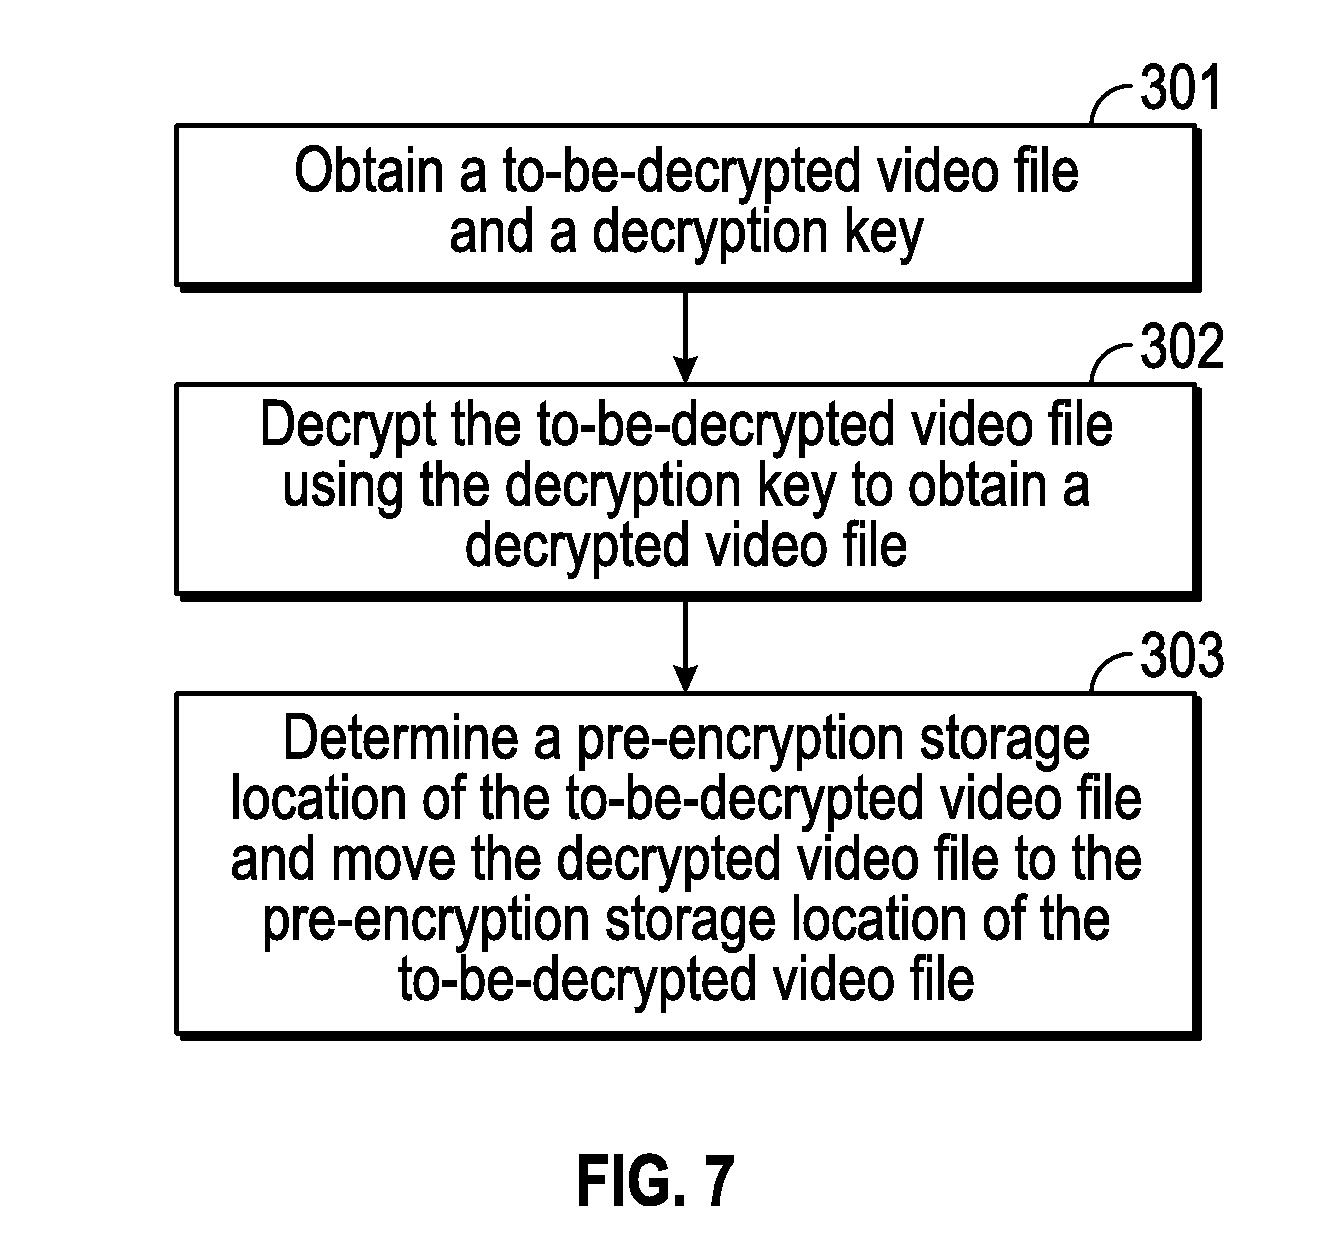 Brevet US20140105390 - Video file encryption and decryption